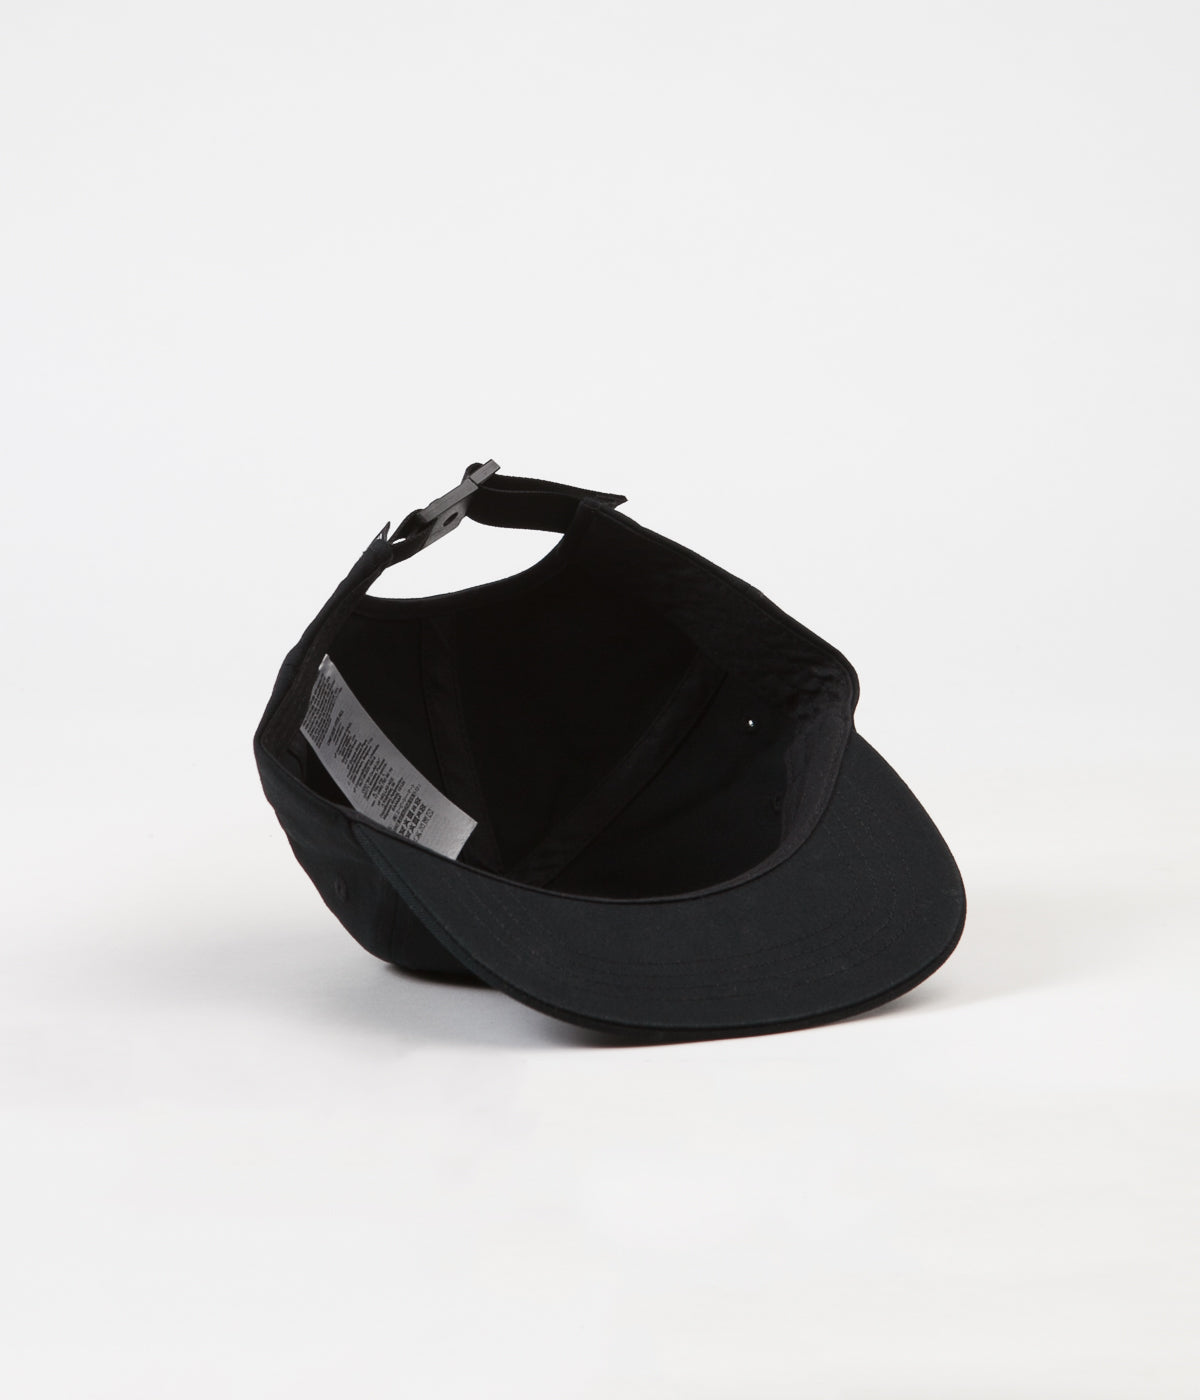 Vans WN1 Jockey Cap - Black